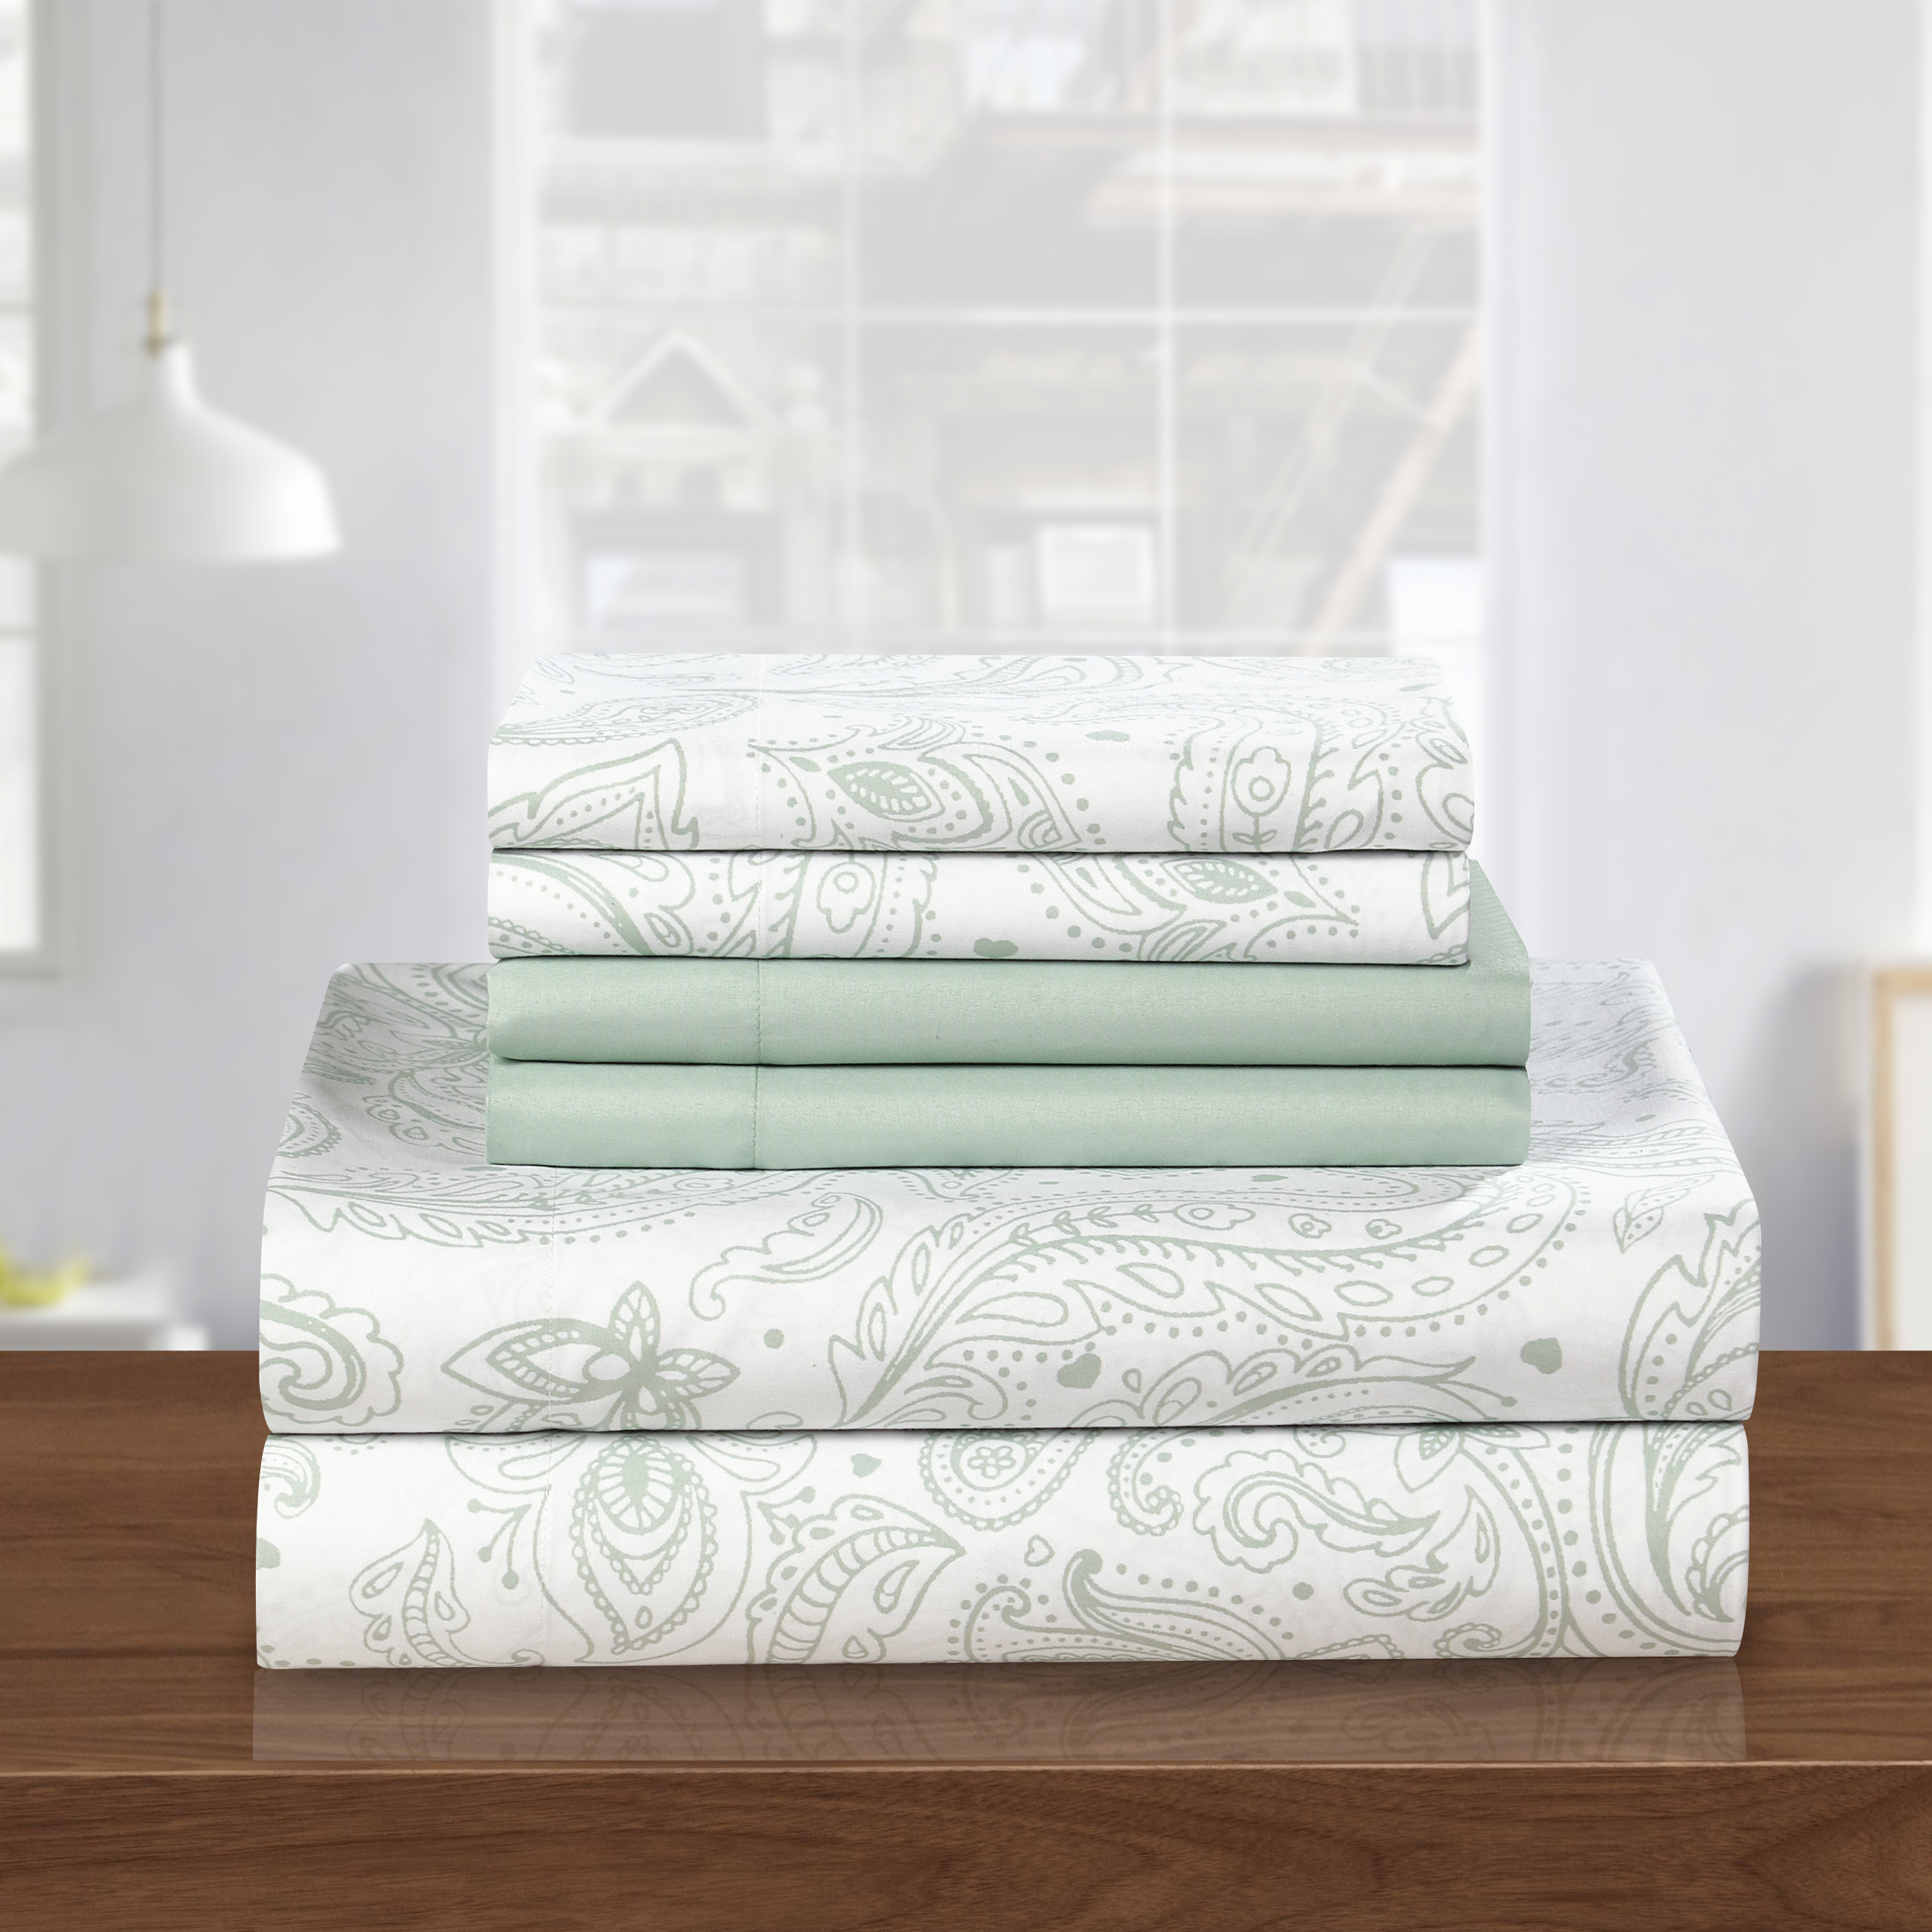 queen sheet set green product image chic home 6piece watkins park super soft microfiber vintage paisley pattern printed two tone - Queen Sheet Sets